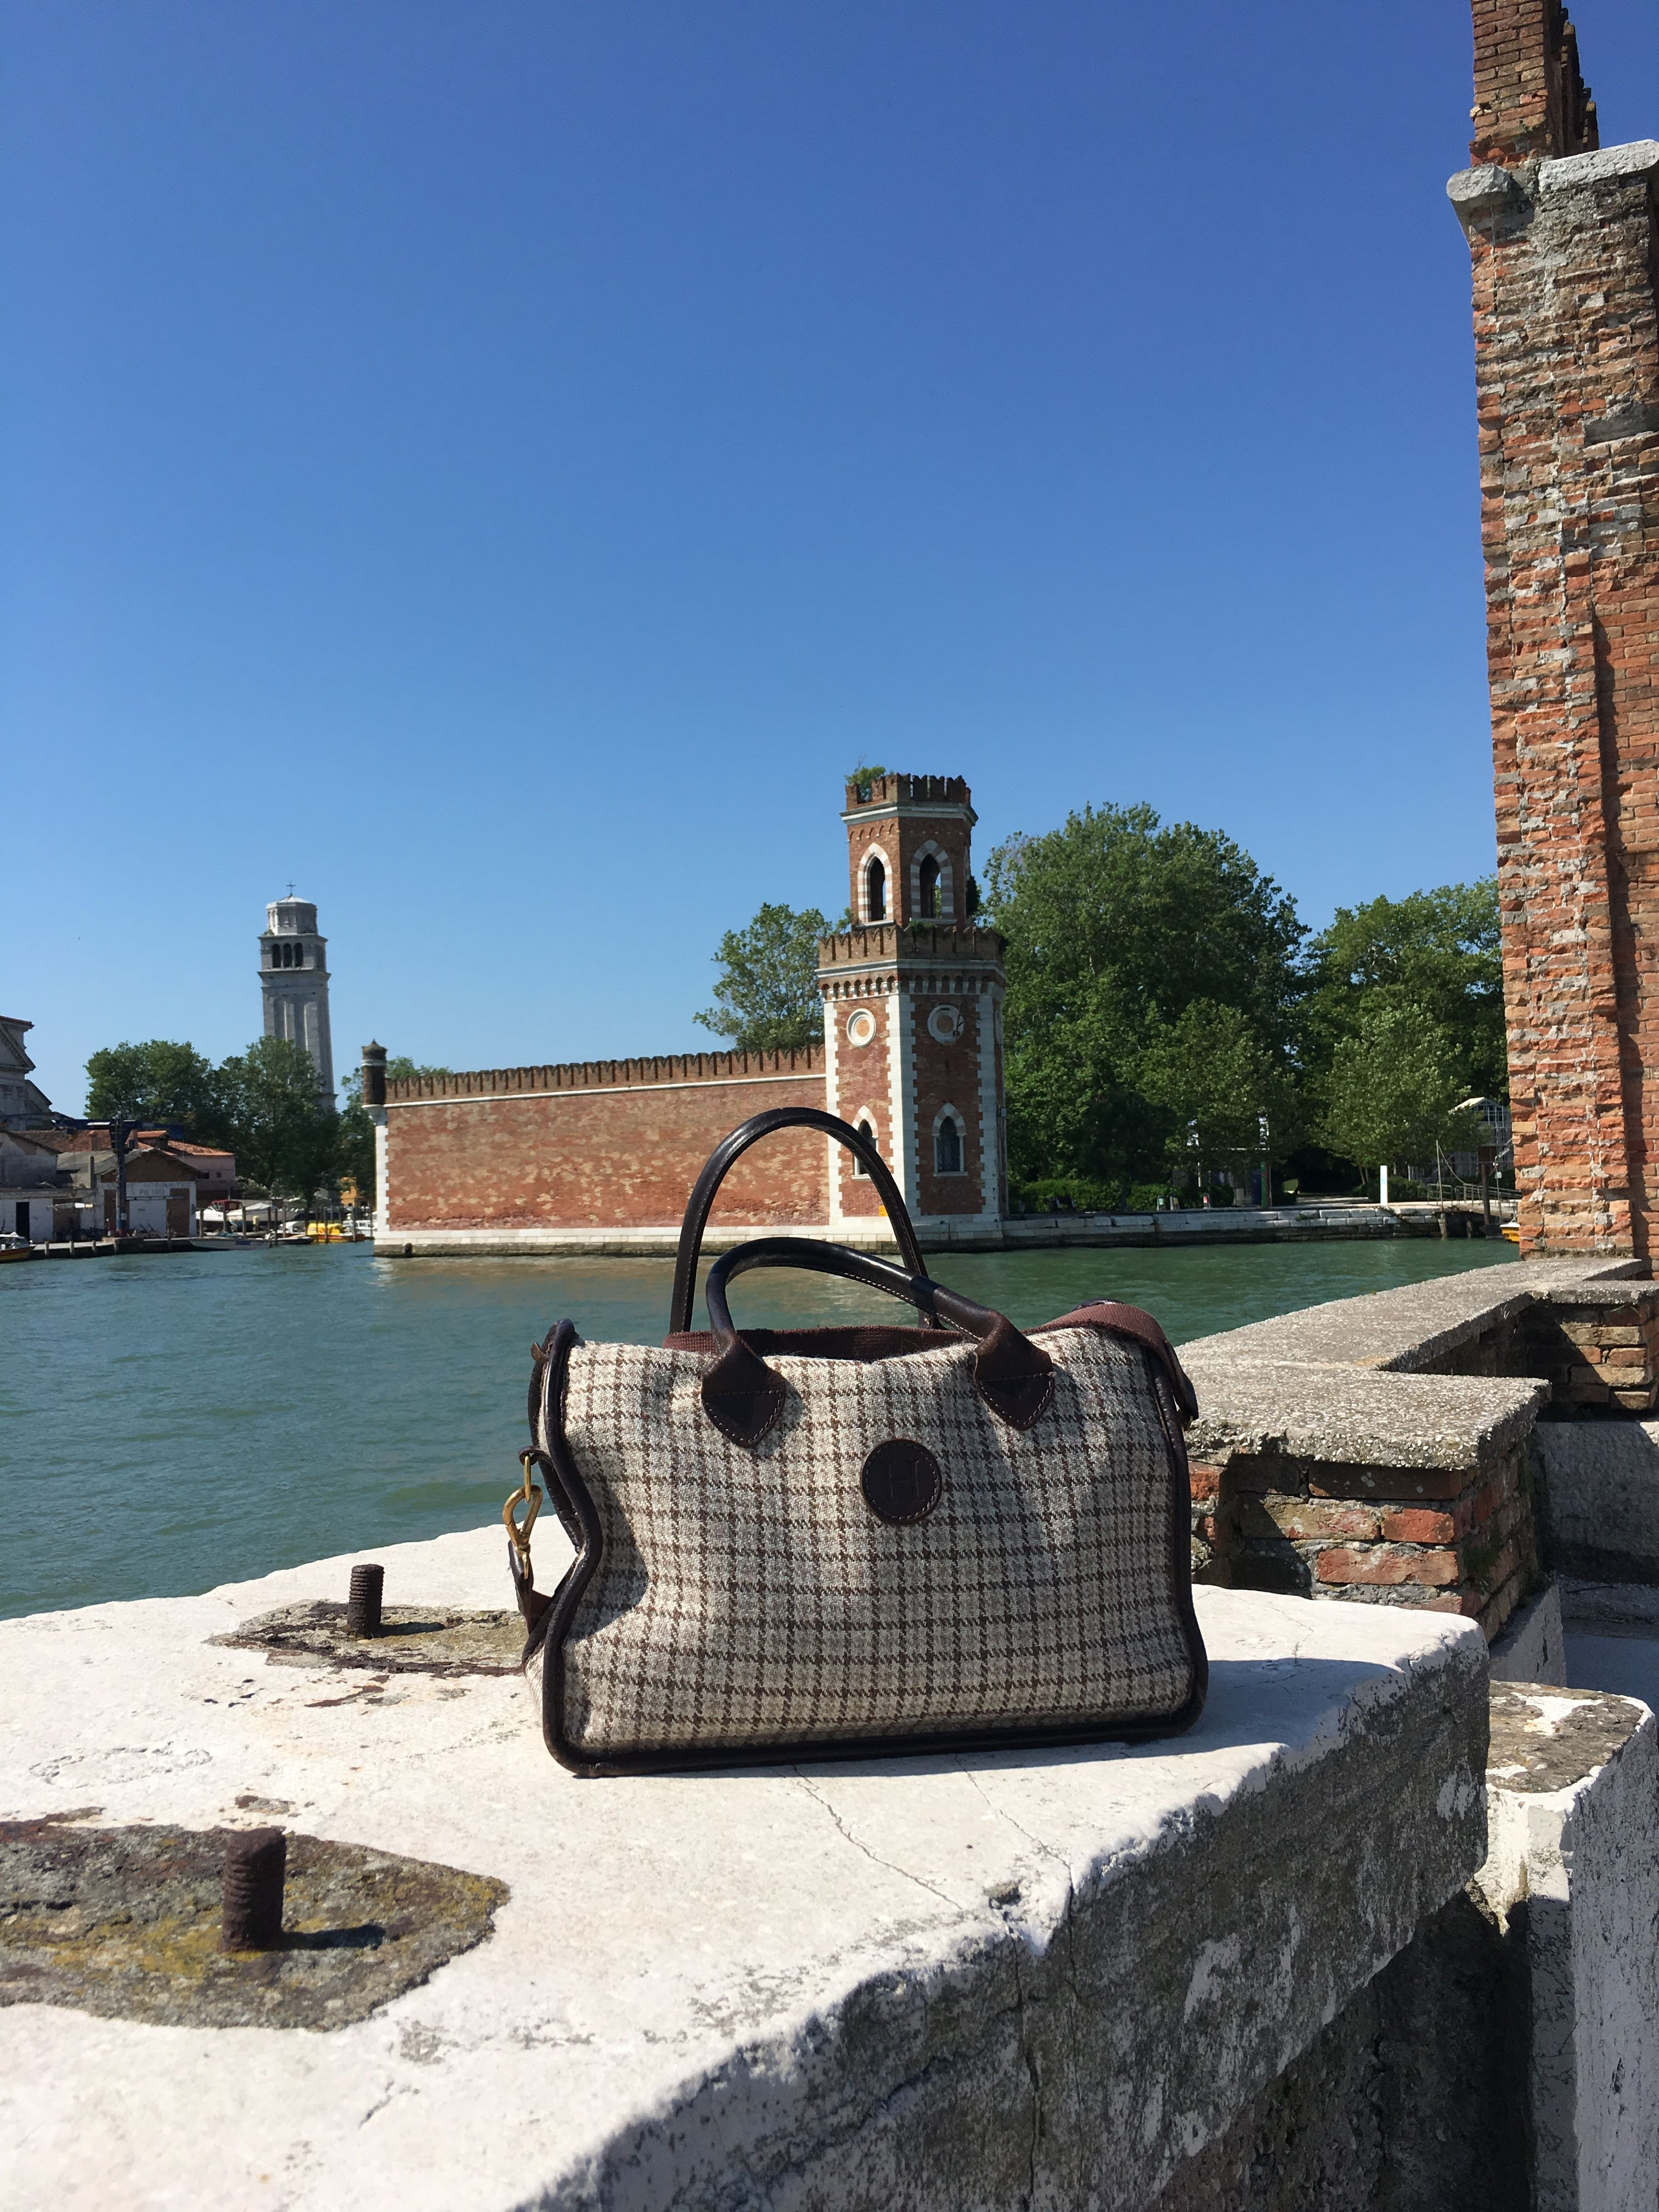 My Herdwick handbag makes an appearance in Venice at the Arsenale, ship-building yard - June 2019